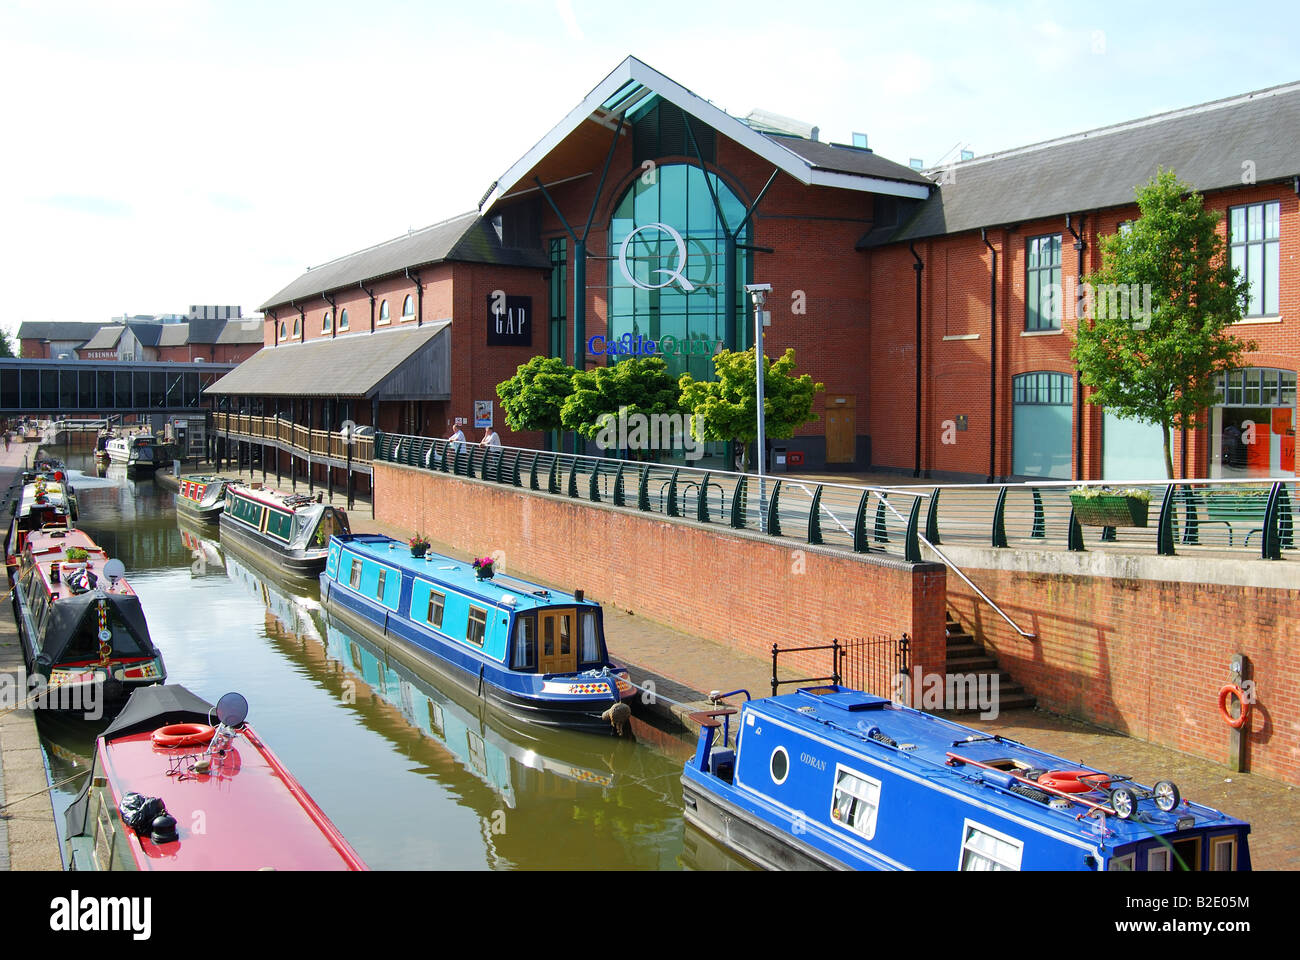 Castle Quay Shopping Centre and Oxford Canal, Banbury, Oxfordshire, England, United Kingdom - Stock Image